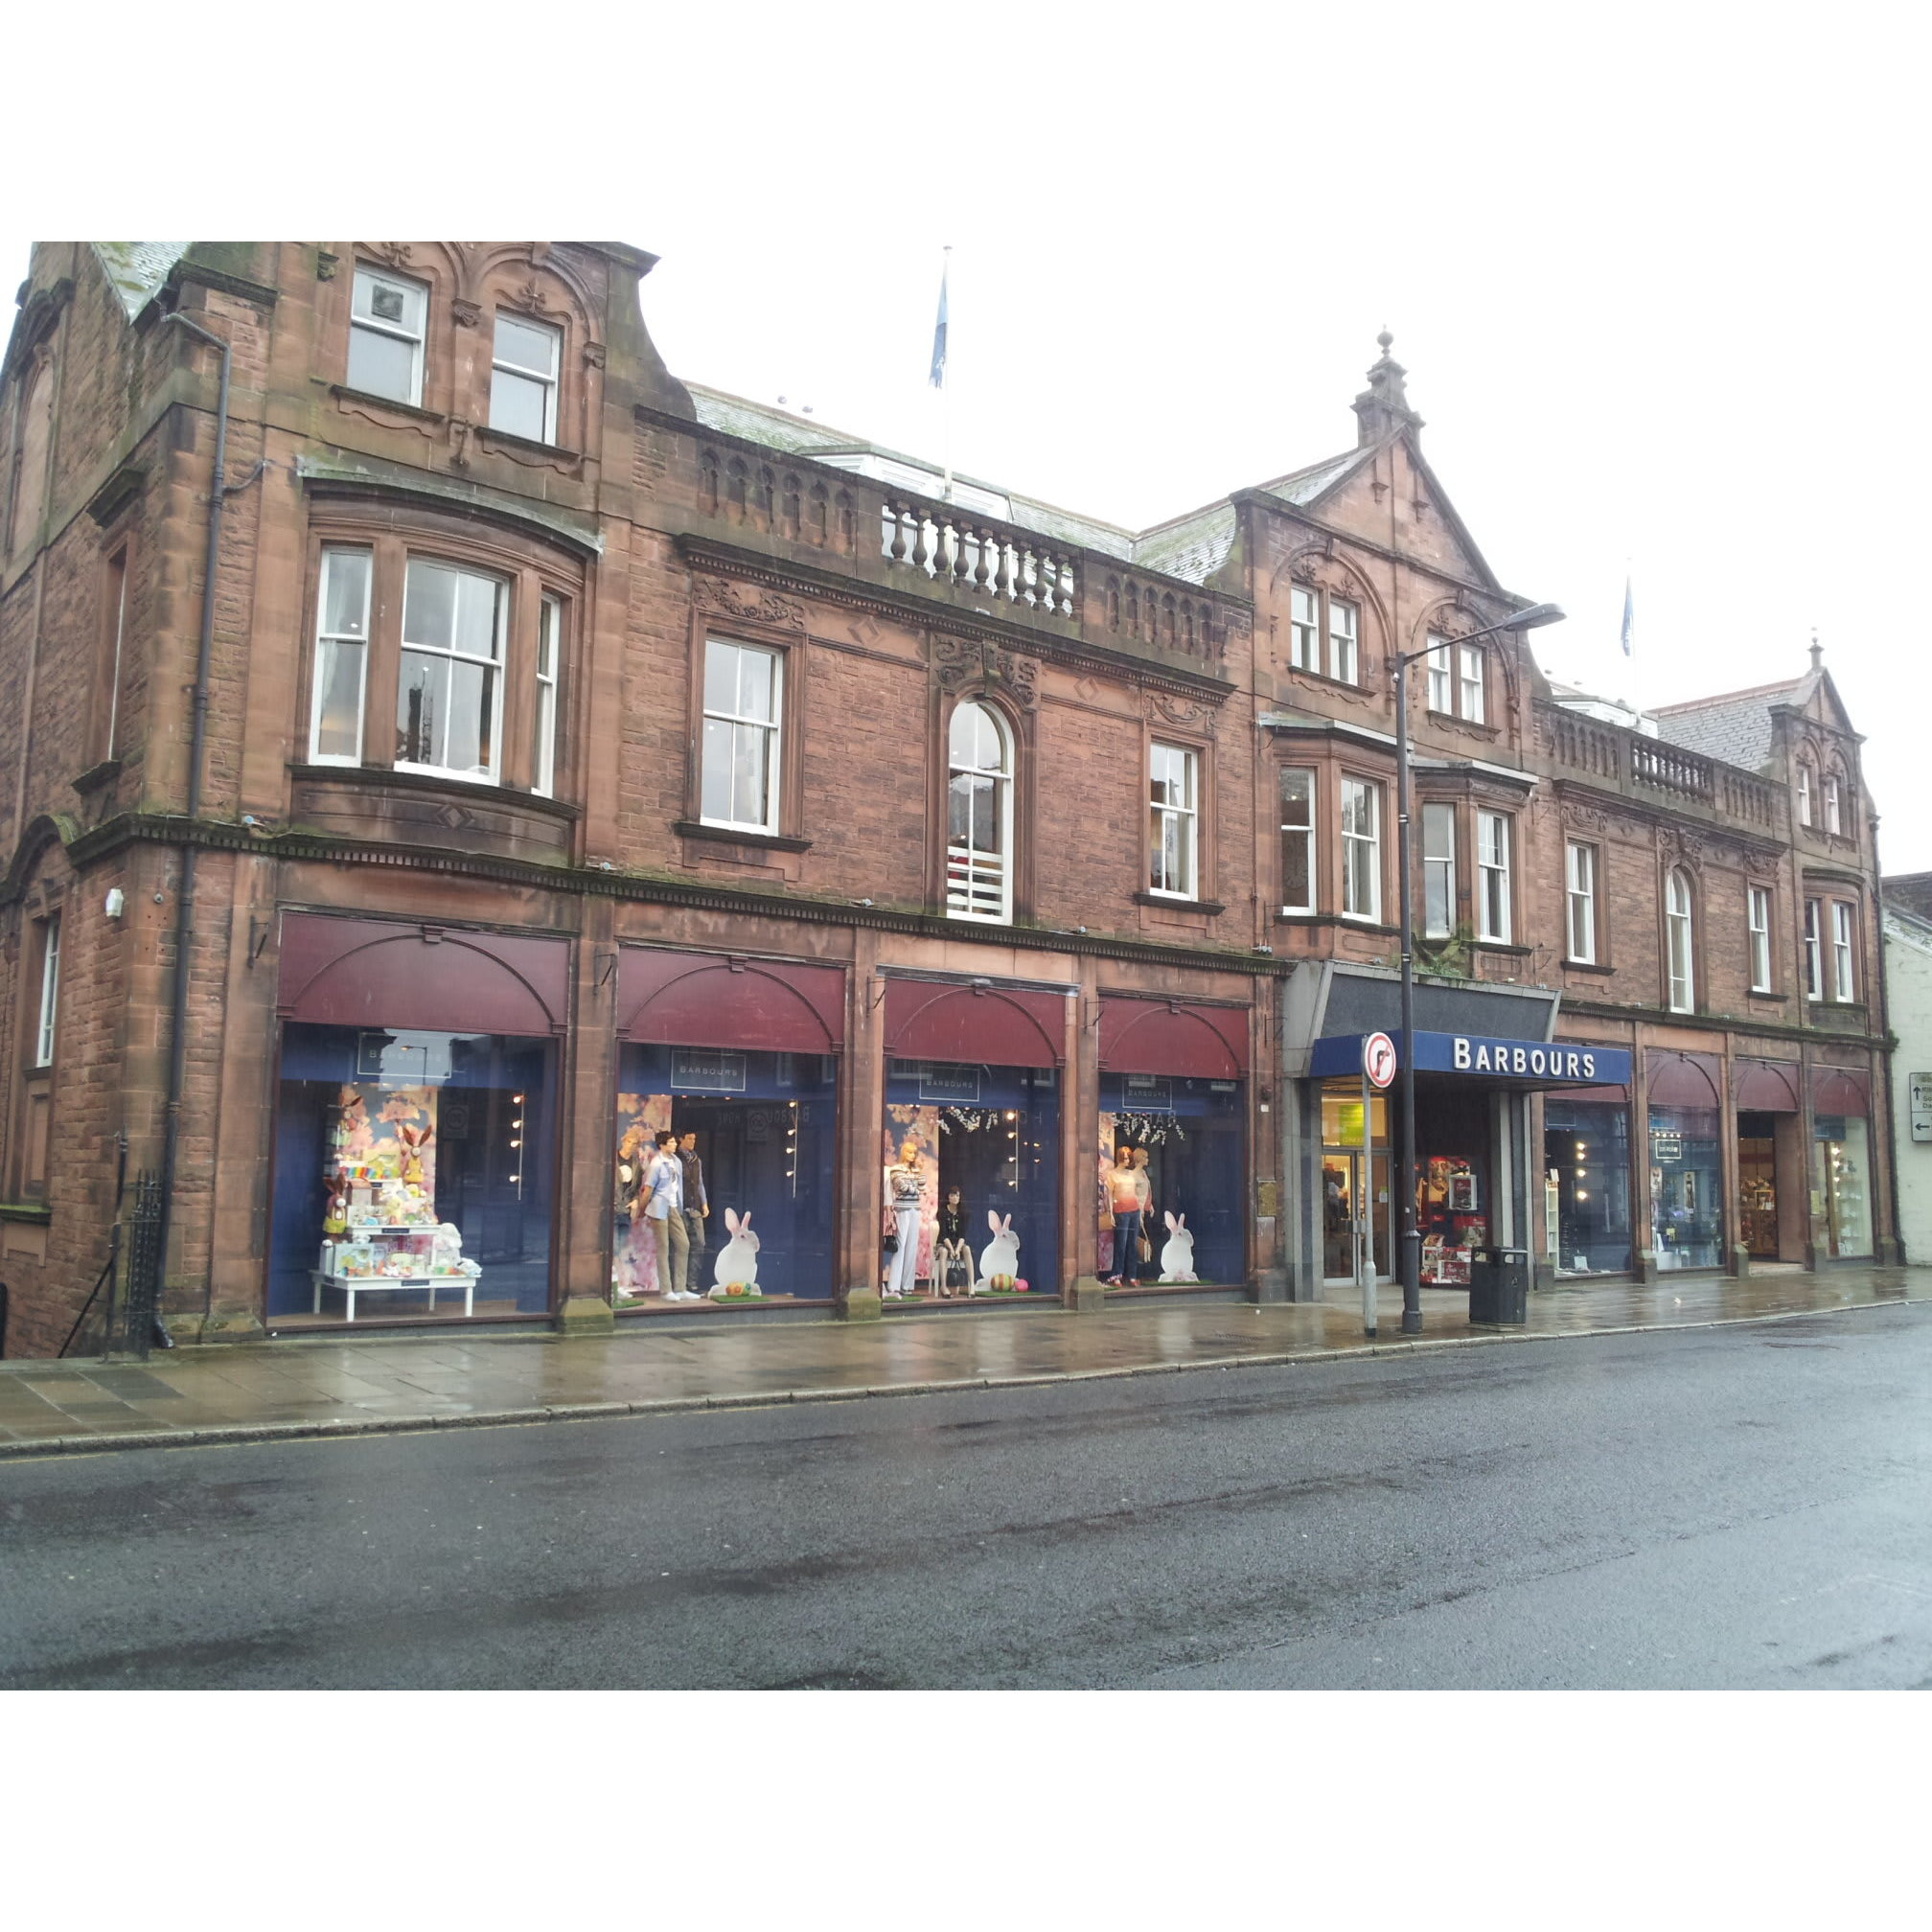 Furniture Stores Near Me In Dumfries, Dumfriesshire